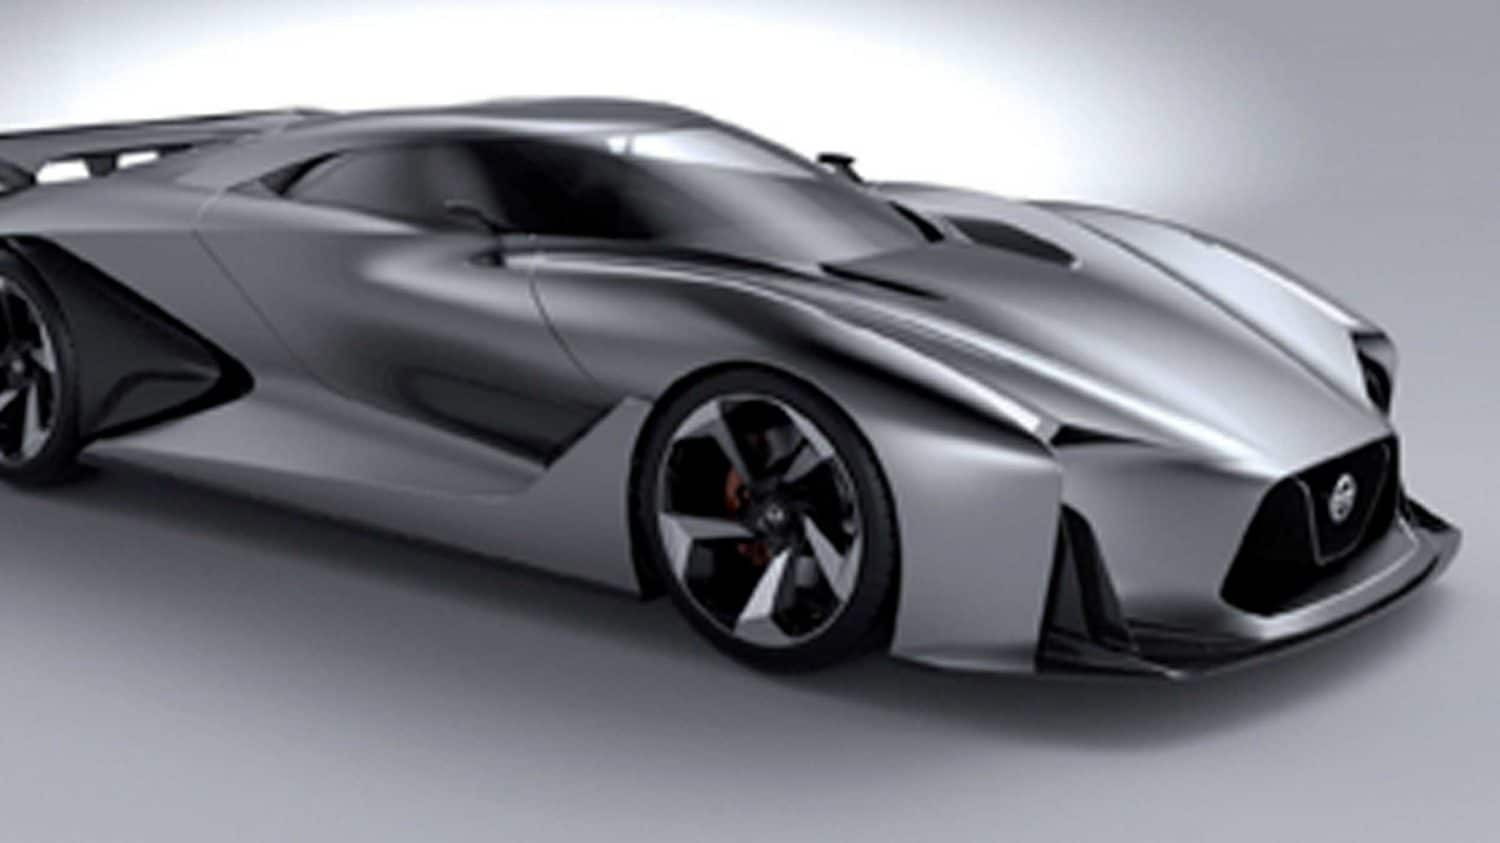 25 Concept of 2020 Nissan Gtr R36 Price with 2020 Nissan Gtr R36